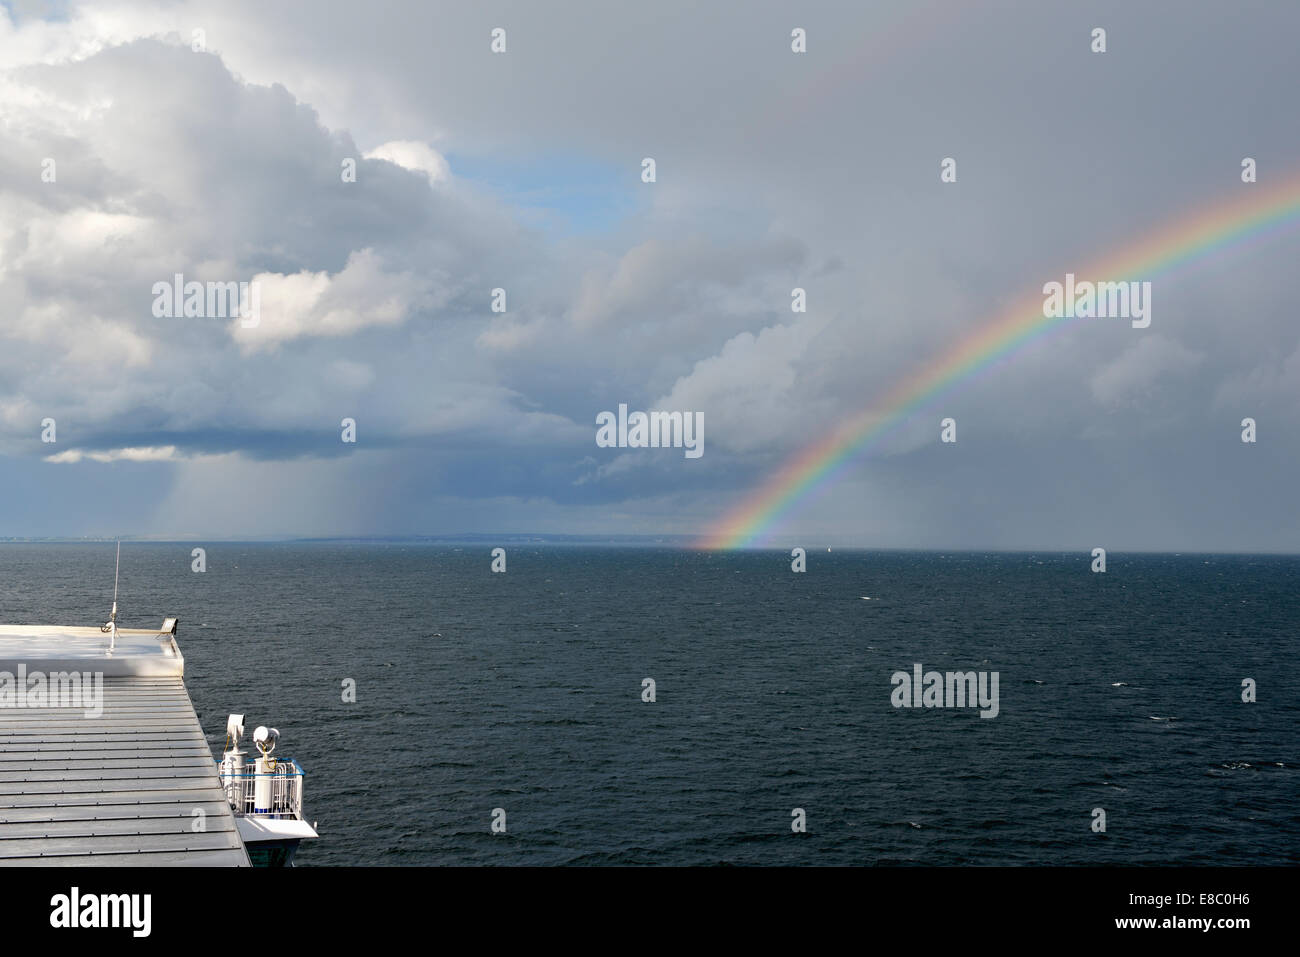 Baltic Sea Squall, View from Copenhagen Ferry to Oslo, Norway 140818_62381 - Stock Image